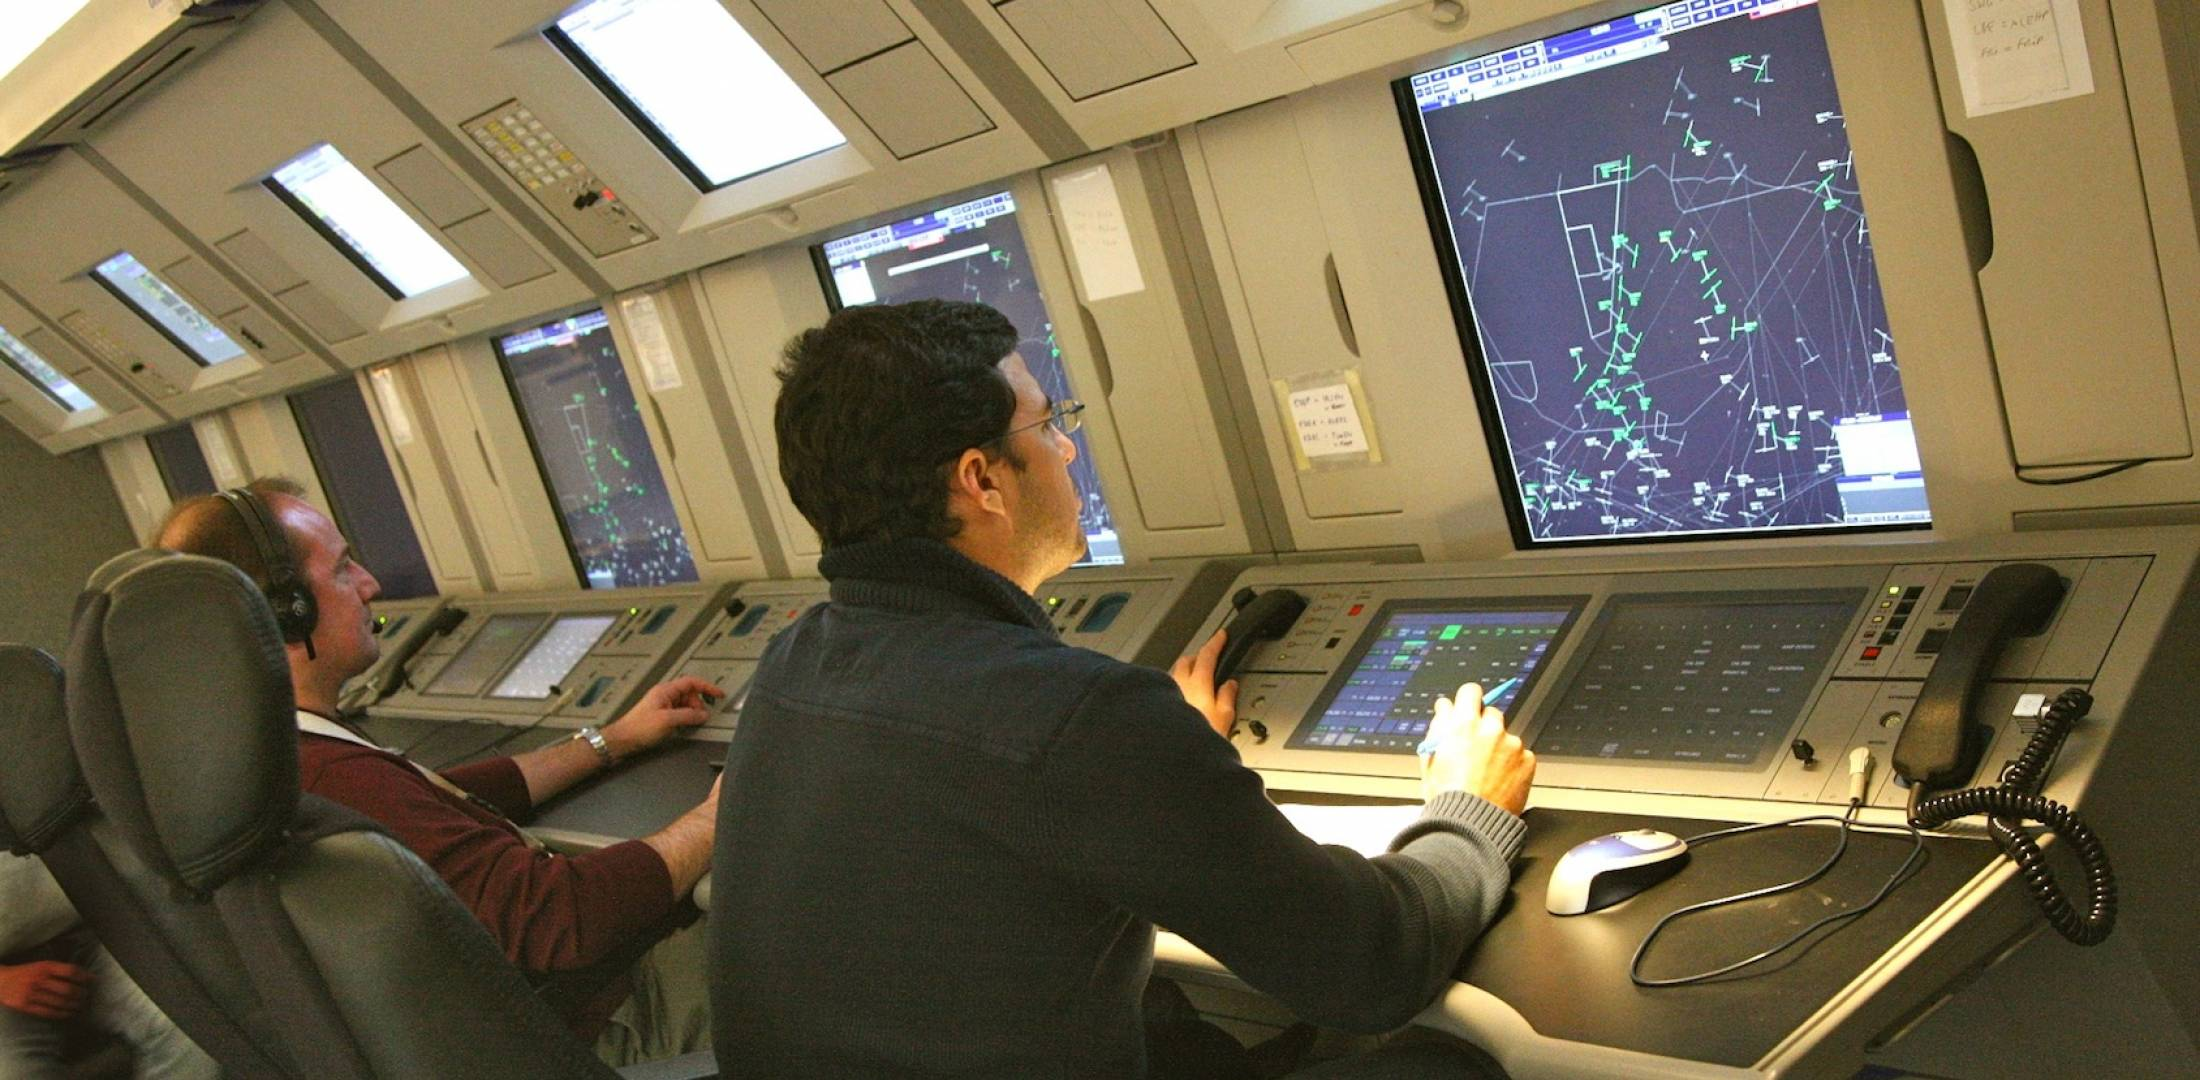 modernization of air traffic control [air traffic control] system provides a comprehensive approach for by gerald l dillingham dollars to replace data-processing, navigation, communications, and other systems under its air traffic control modernization program but.